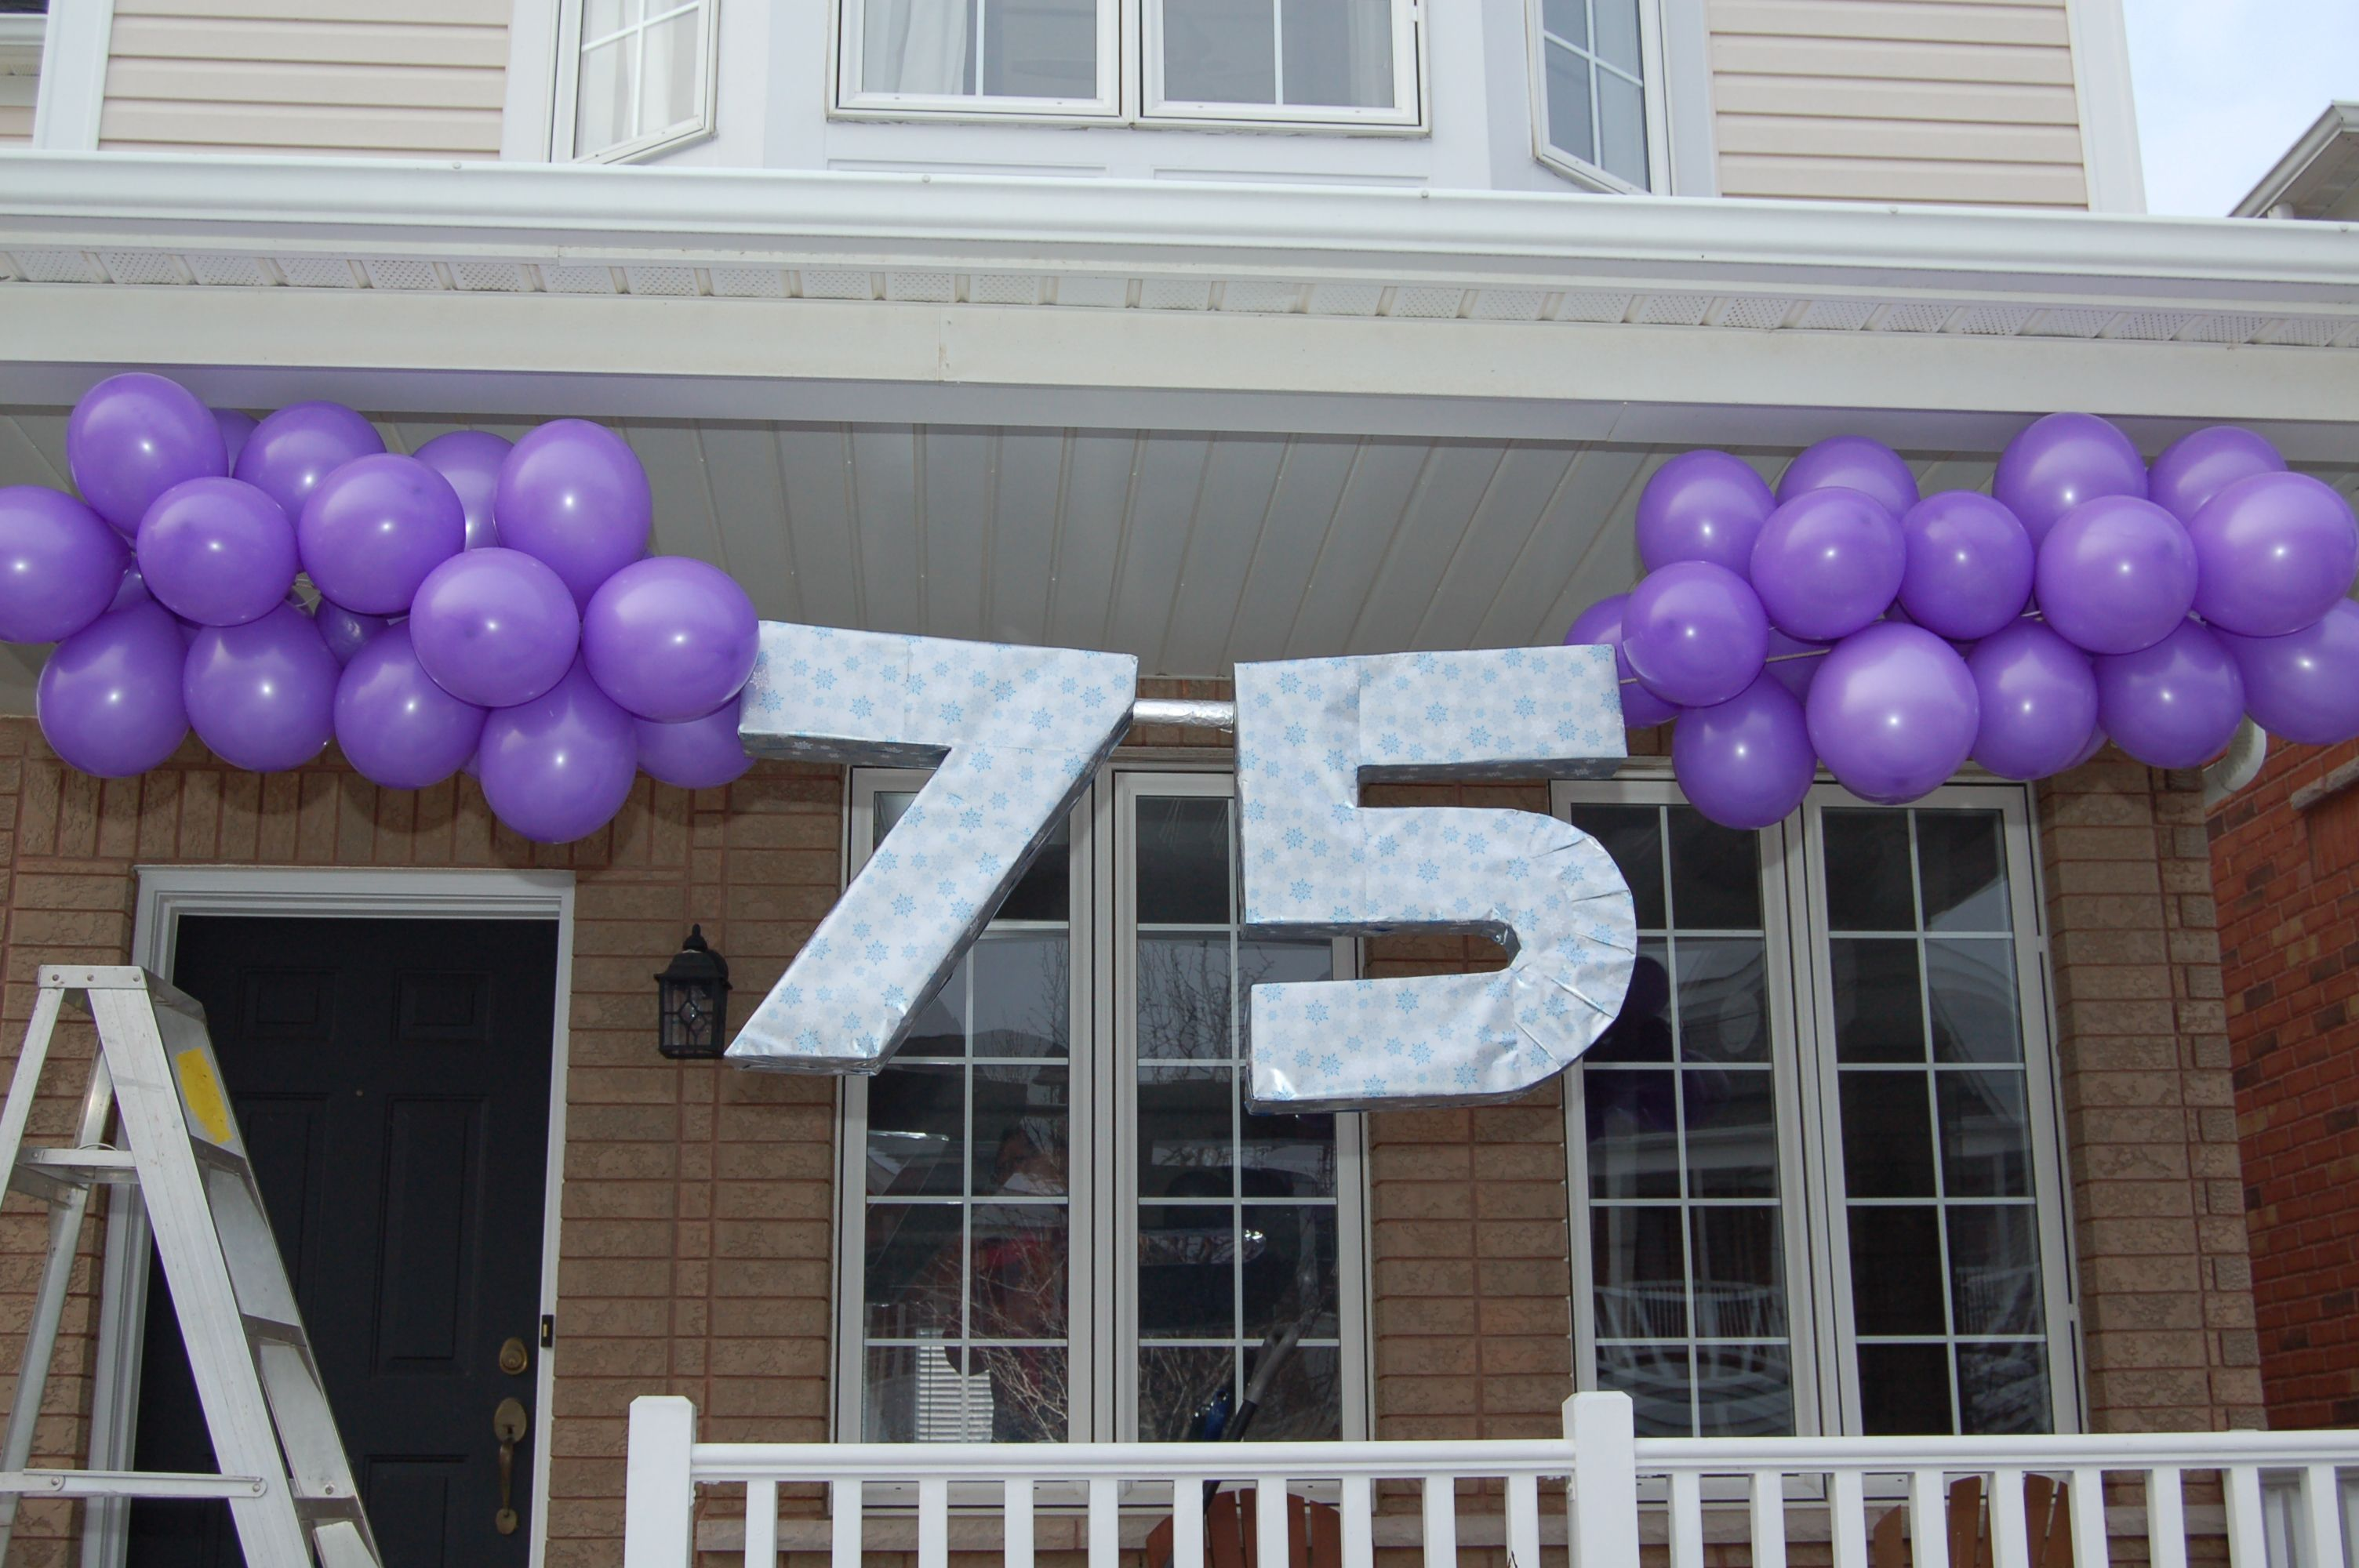 Dads 75th Birthday Banner Made With Giant Cardboard Numbersthis Would Be Cool When He Pulls Upa Few Less Balloons Of Course